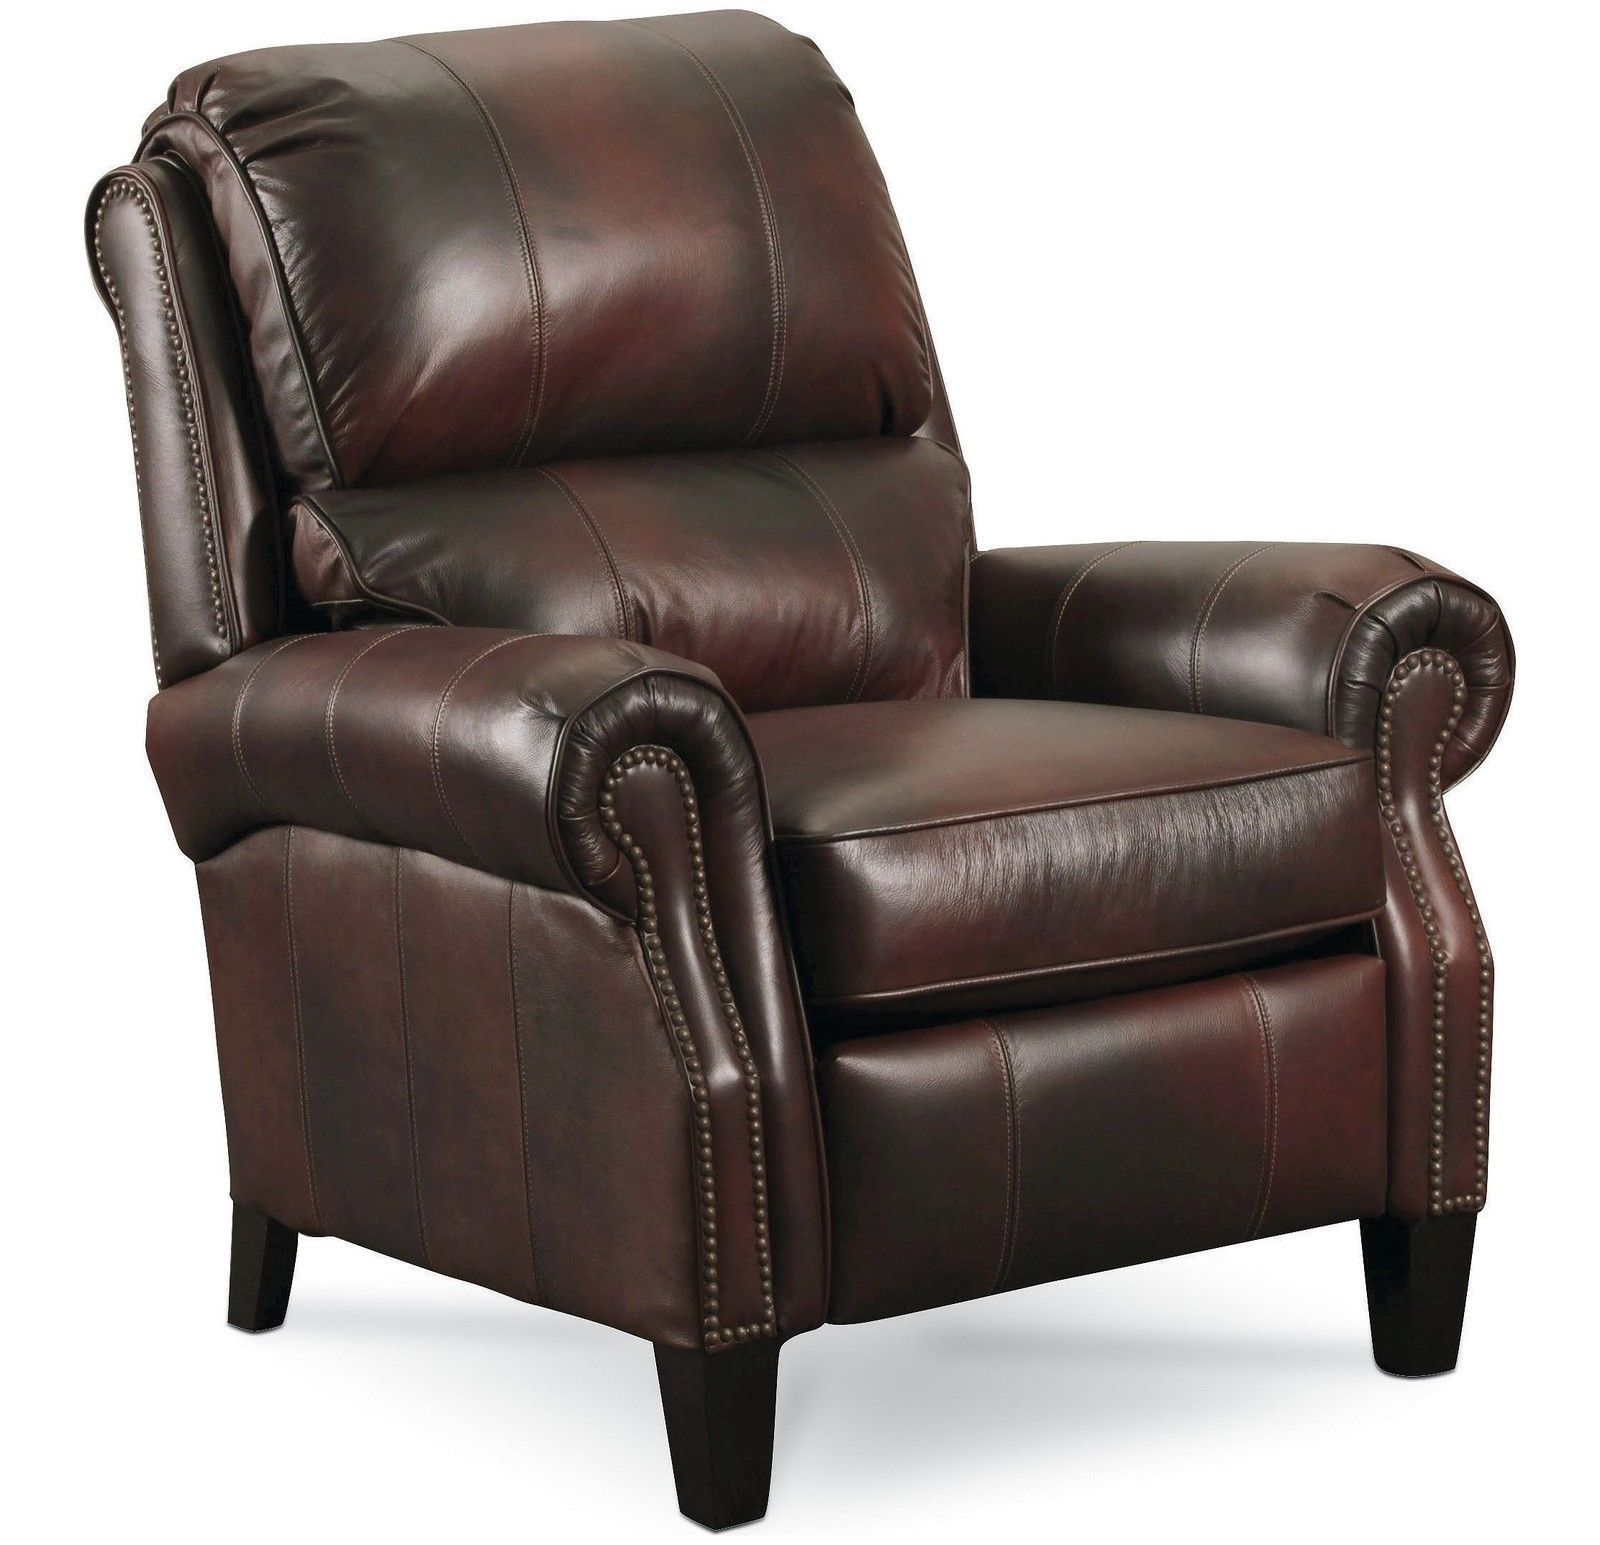 Dark Brown And Big Recliner  sc 1 st  HomesFeed & Top Rated Recliners | HomesFeed islam-shia.org